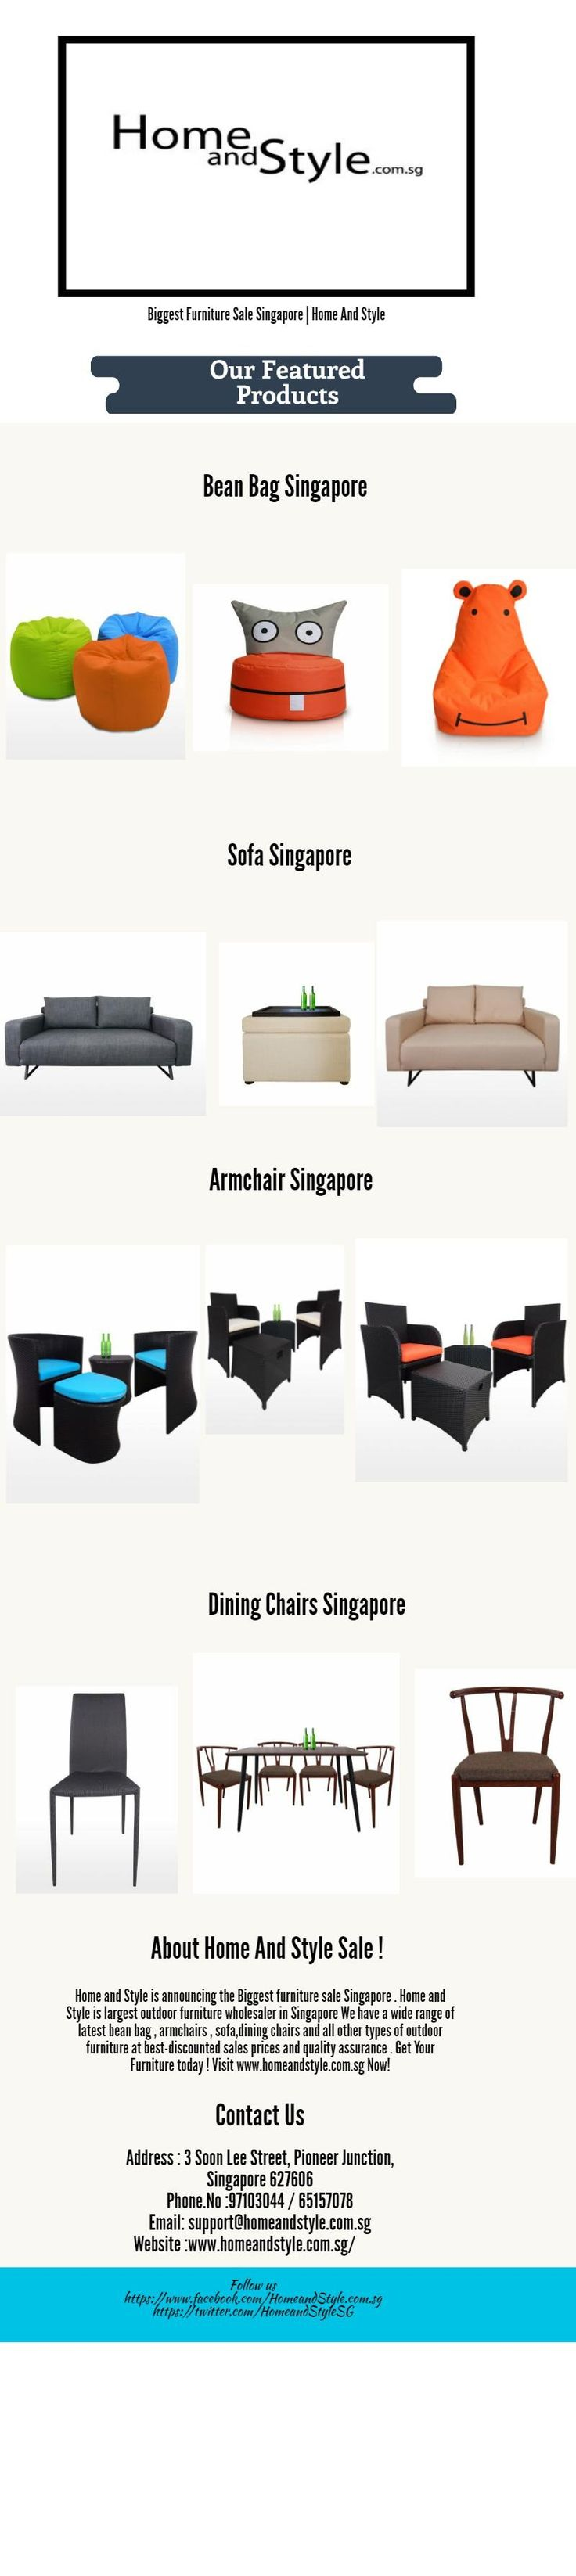 Home and Style is announcing the Biggest furniture sale Singapore . Home and Style is largest outdoor furniture wholesaler in Singapore We have a wide range of latest bean bag , armchairs , sofa,dining chairs and all other types of outdoor furniture at best-discounted sales prices and quality assurance . Get Your Furniture today ! Visit www.homeandstyle.com.sg Now!